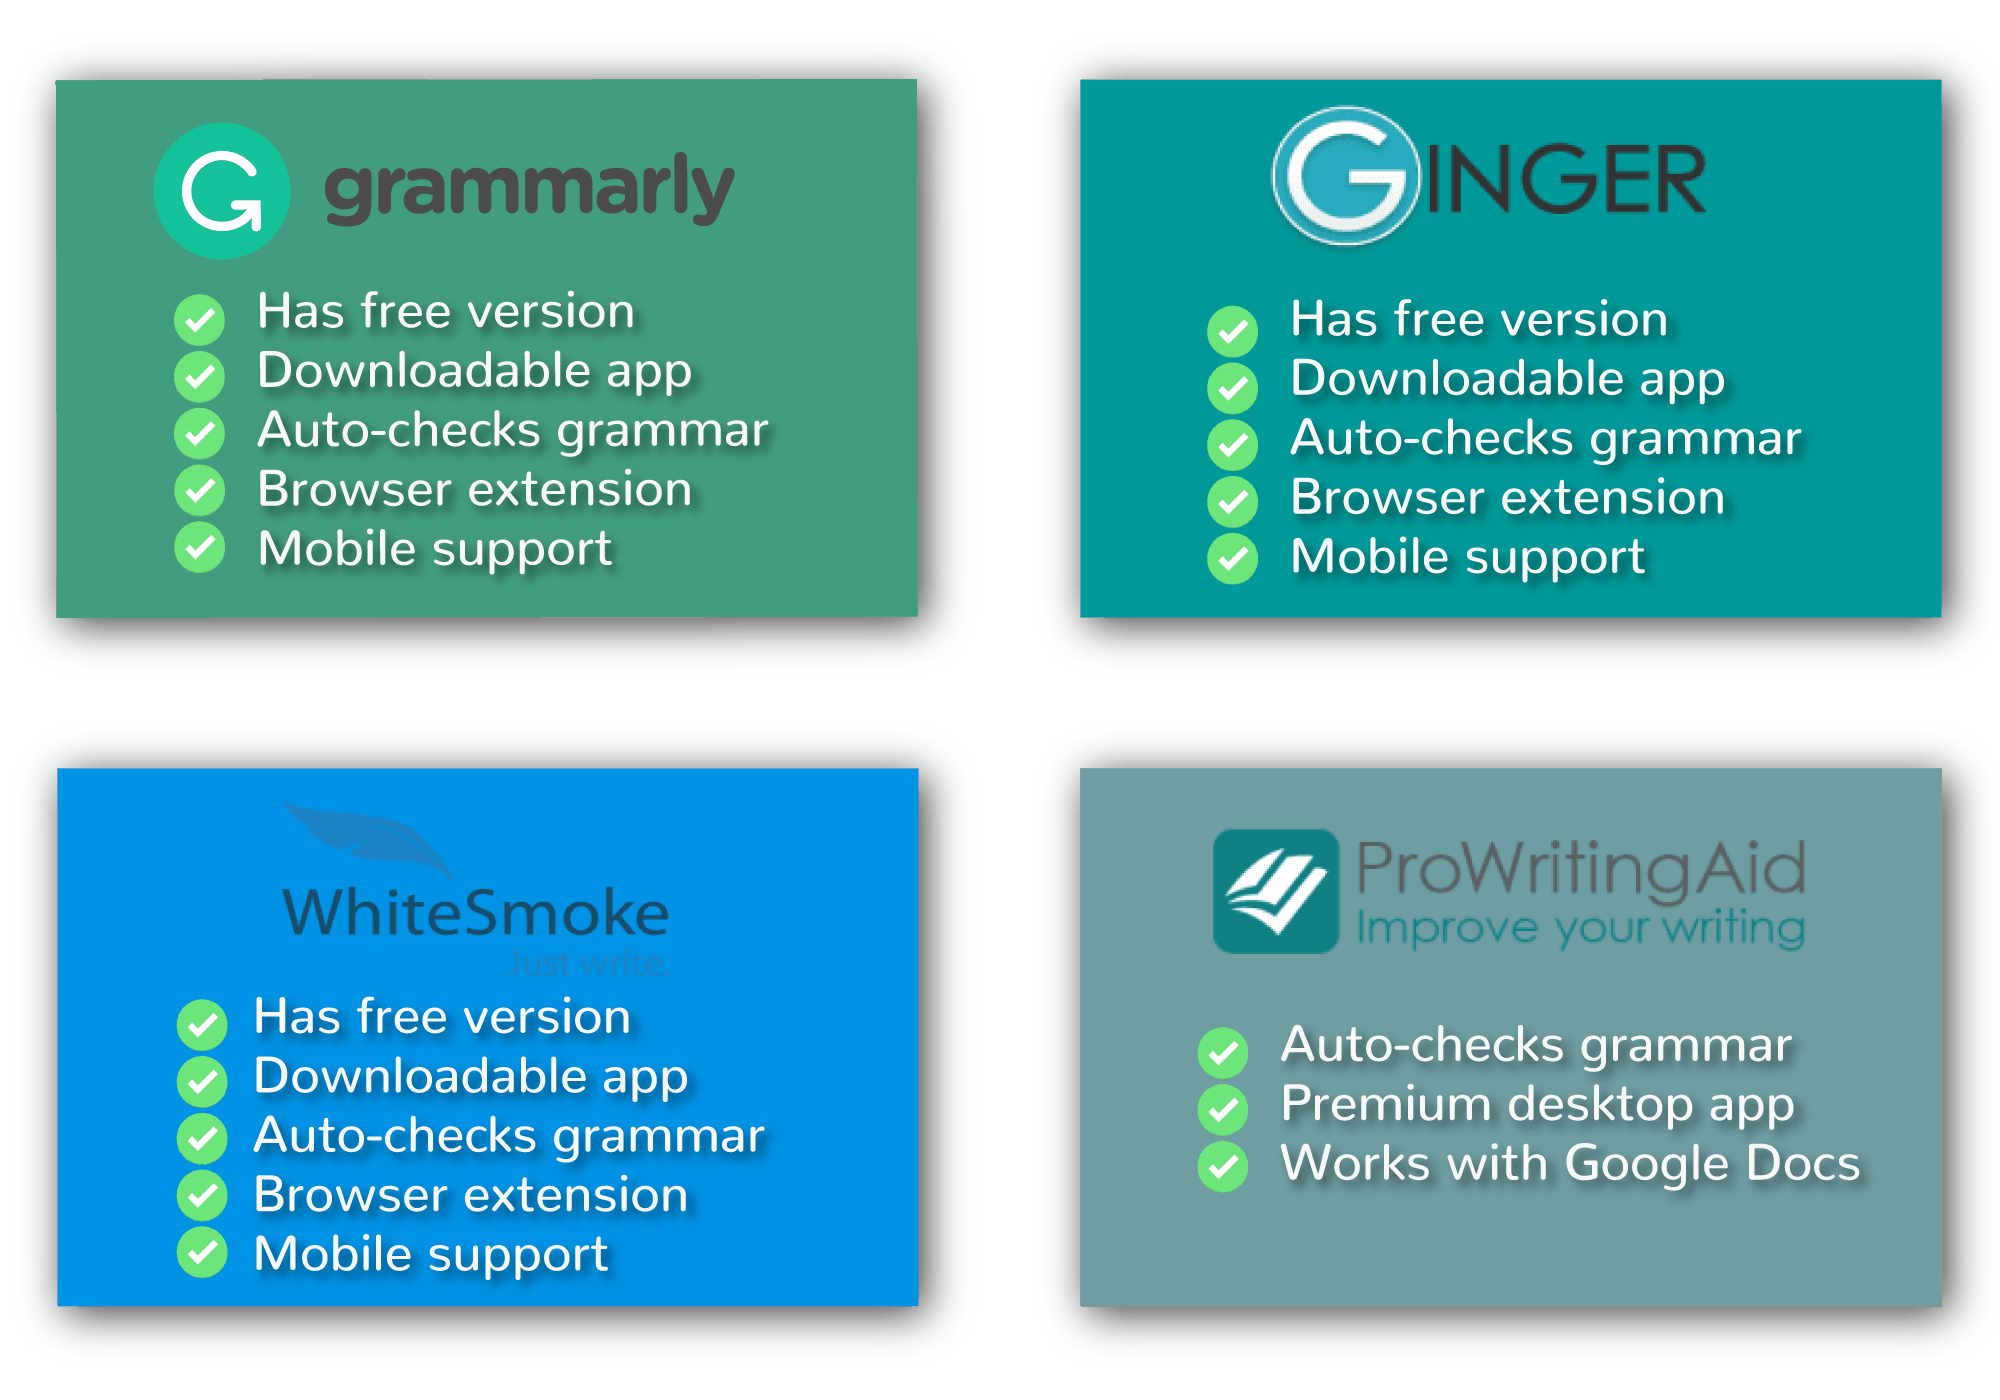 online proofreading tools comparison